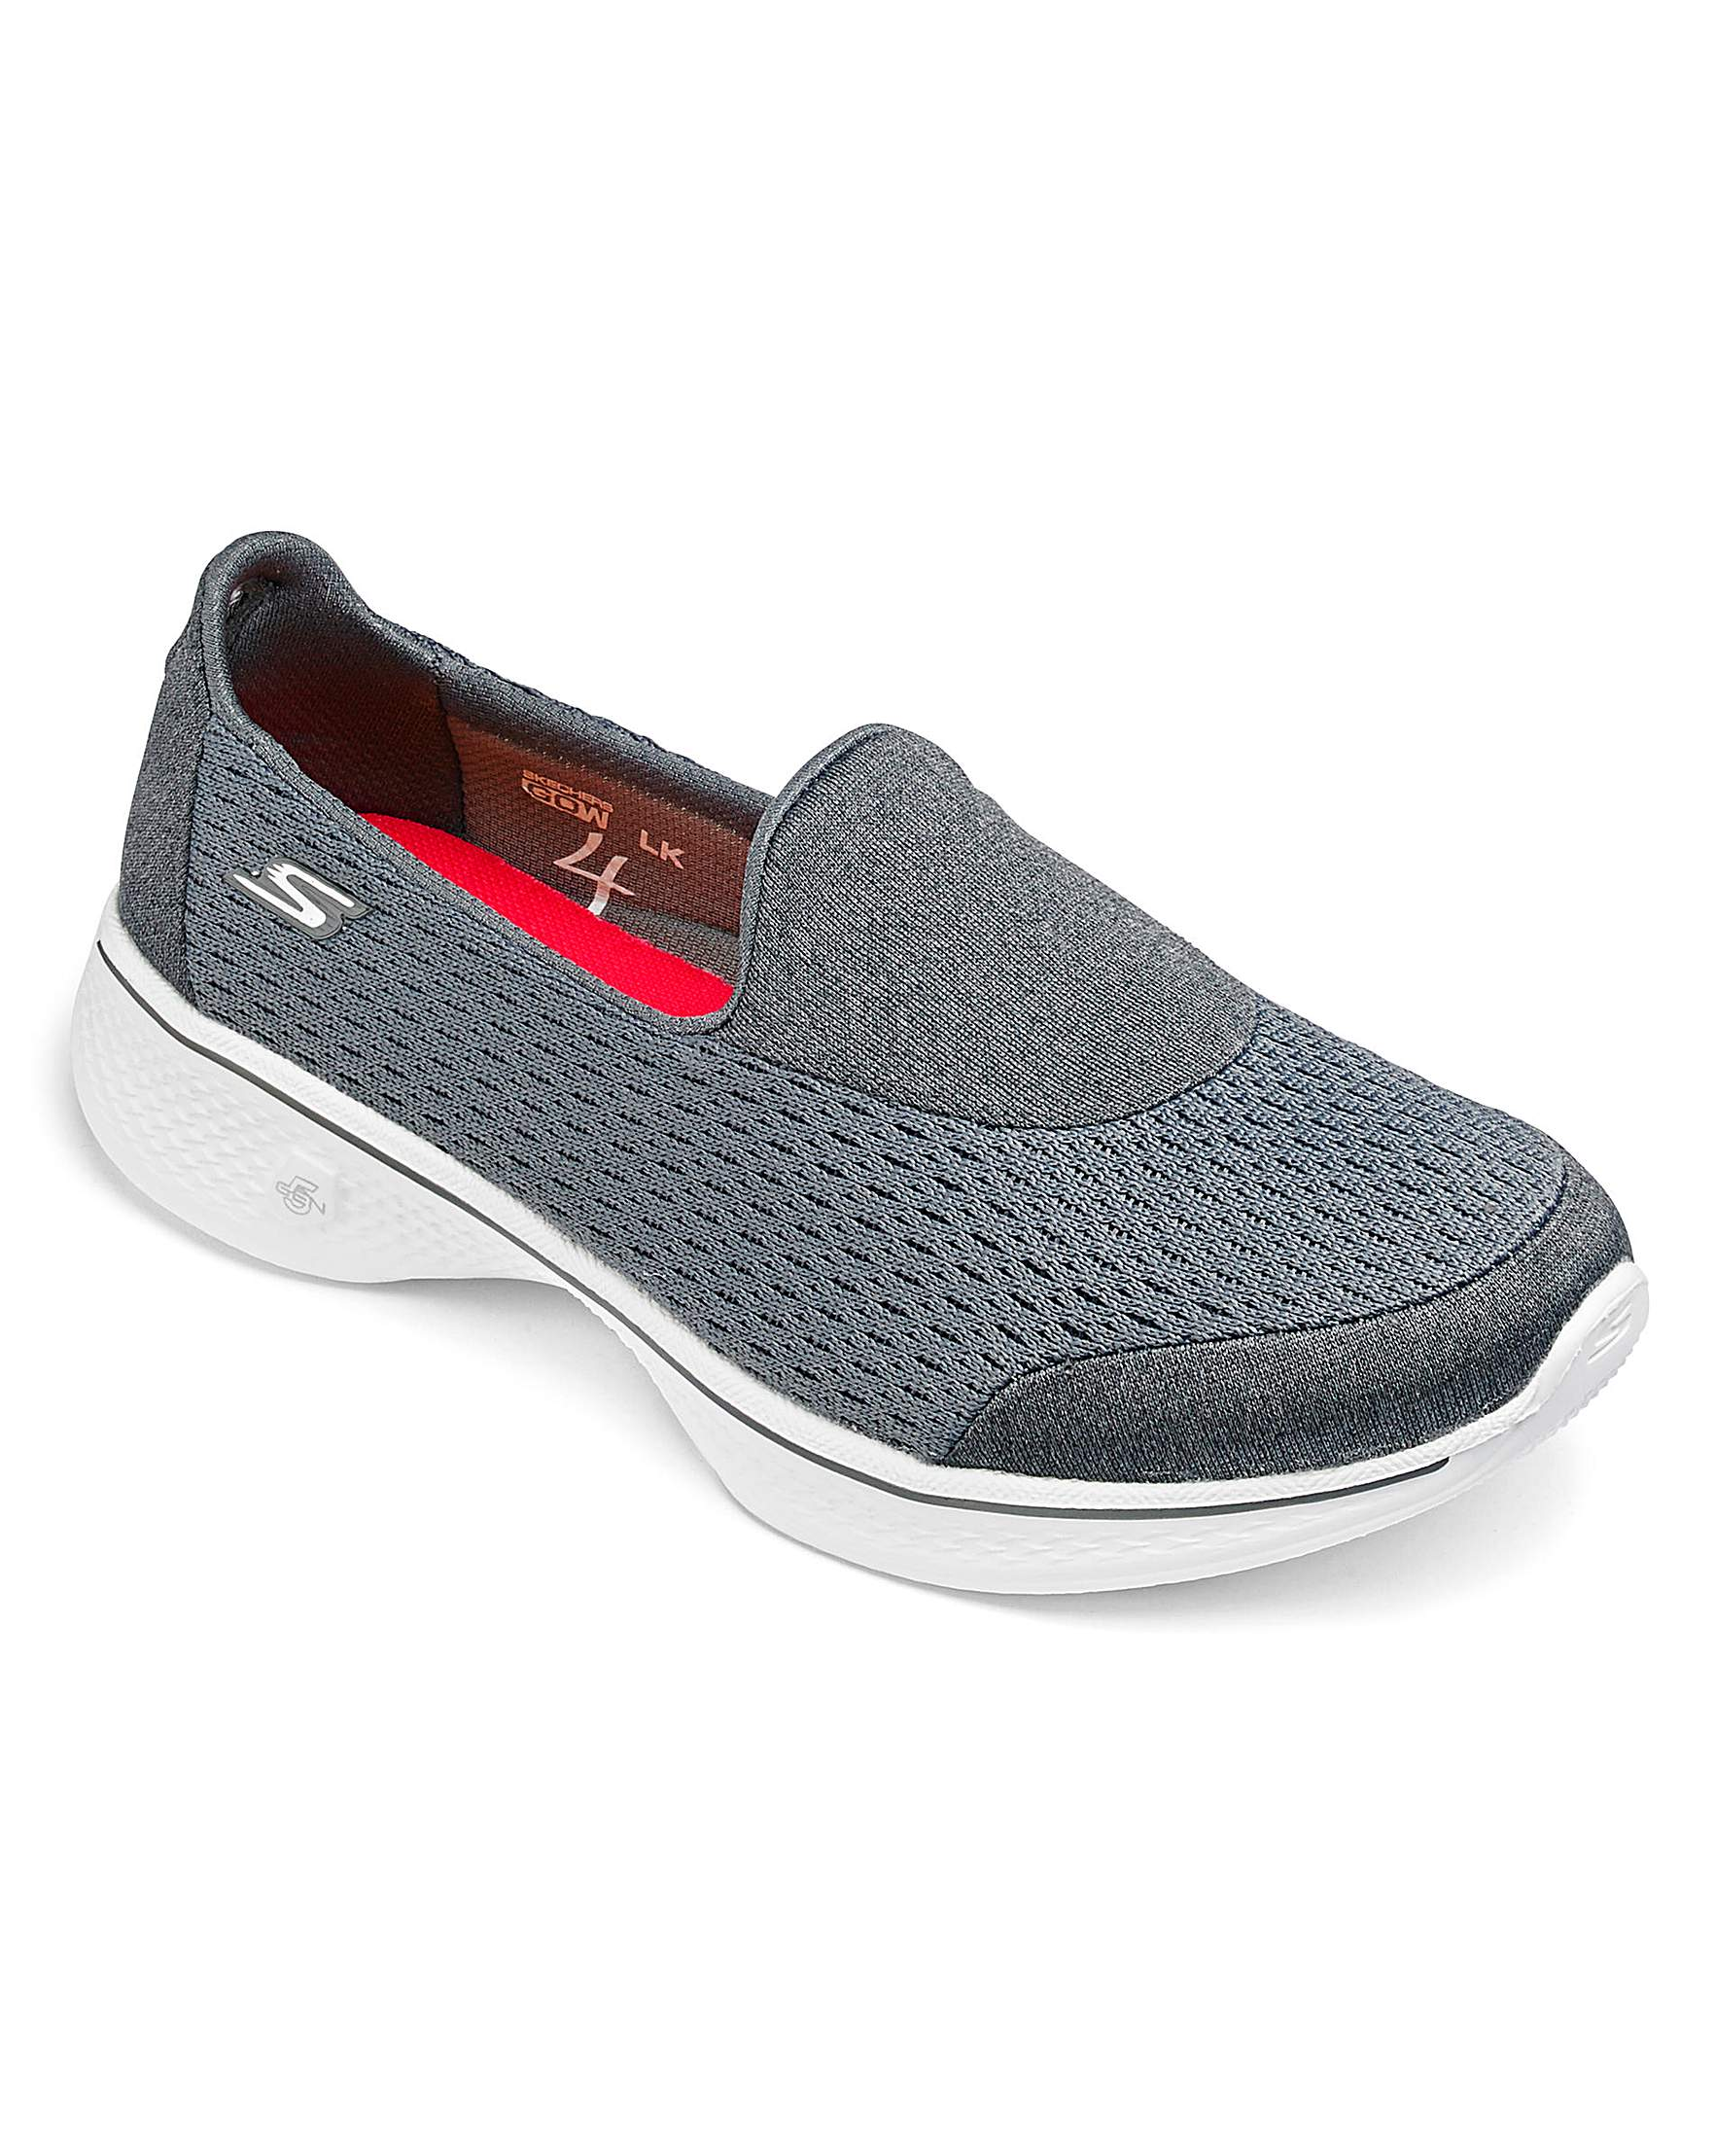 How To Clean Skechers Go Walk Shoes